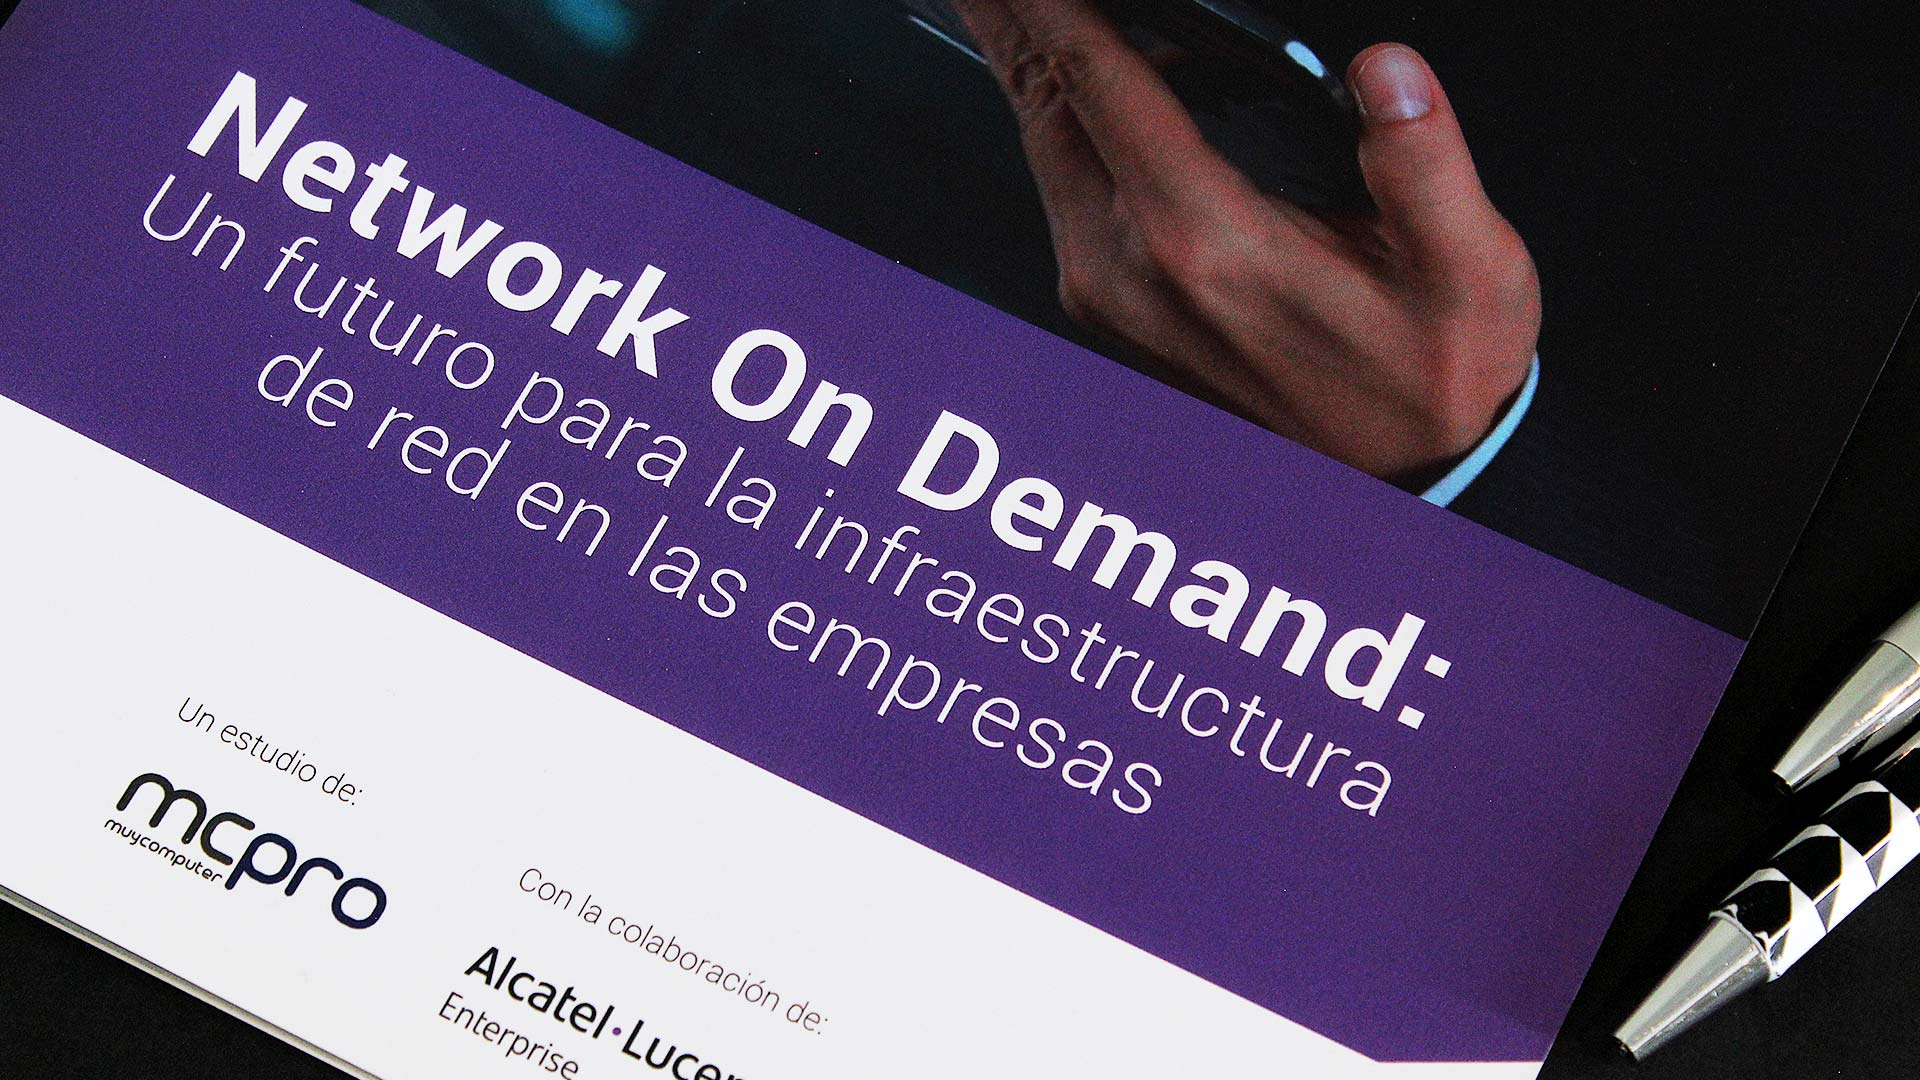 alcatel-content-marketing-informe-resumen-ejecutivo-networkondemand-ebook-2016-10